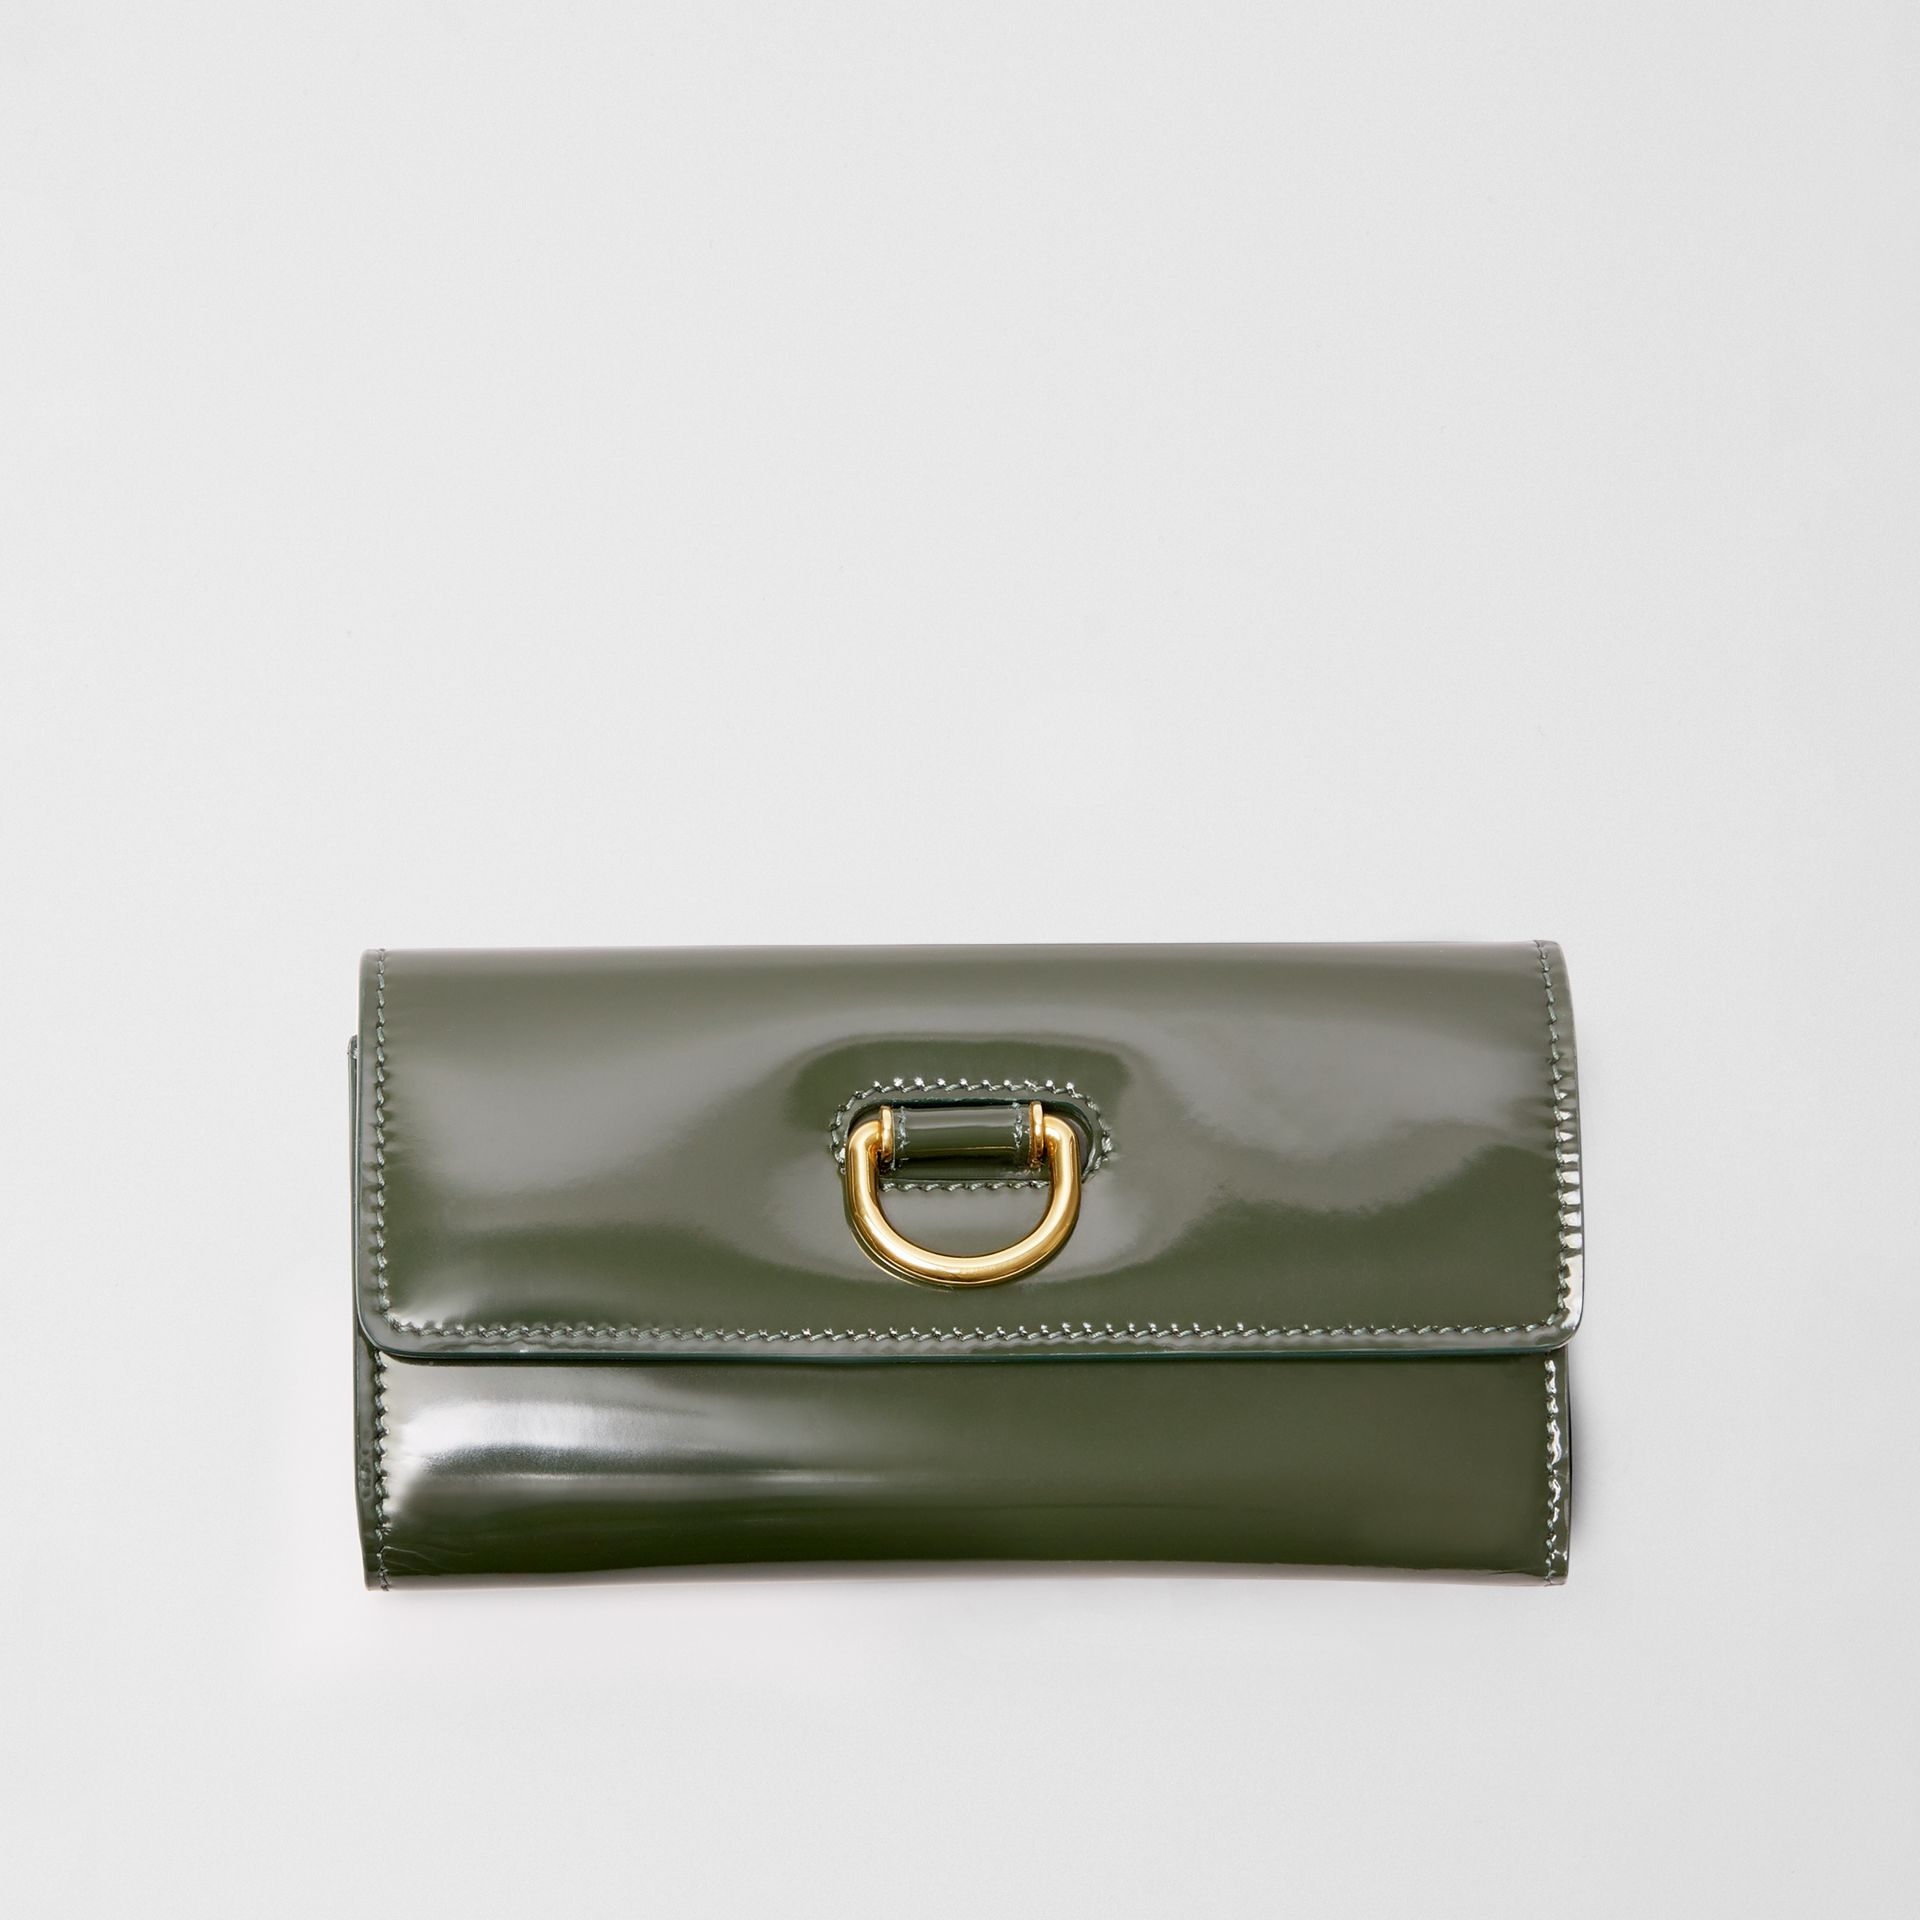 D-ring Patent Leather Continental Wallet in Dark Forest Green - Women | Burberry United States - gallery image 5